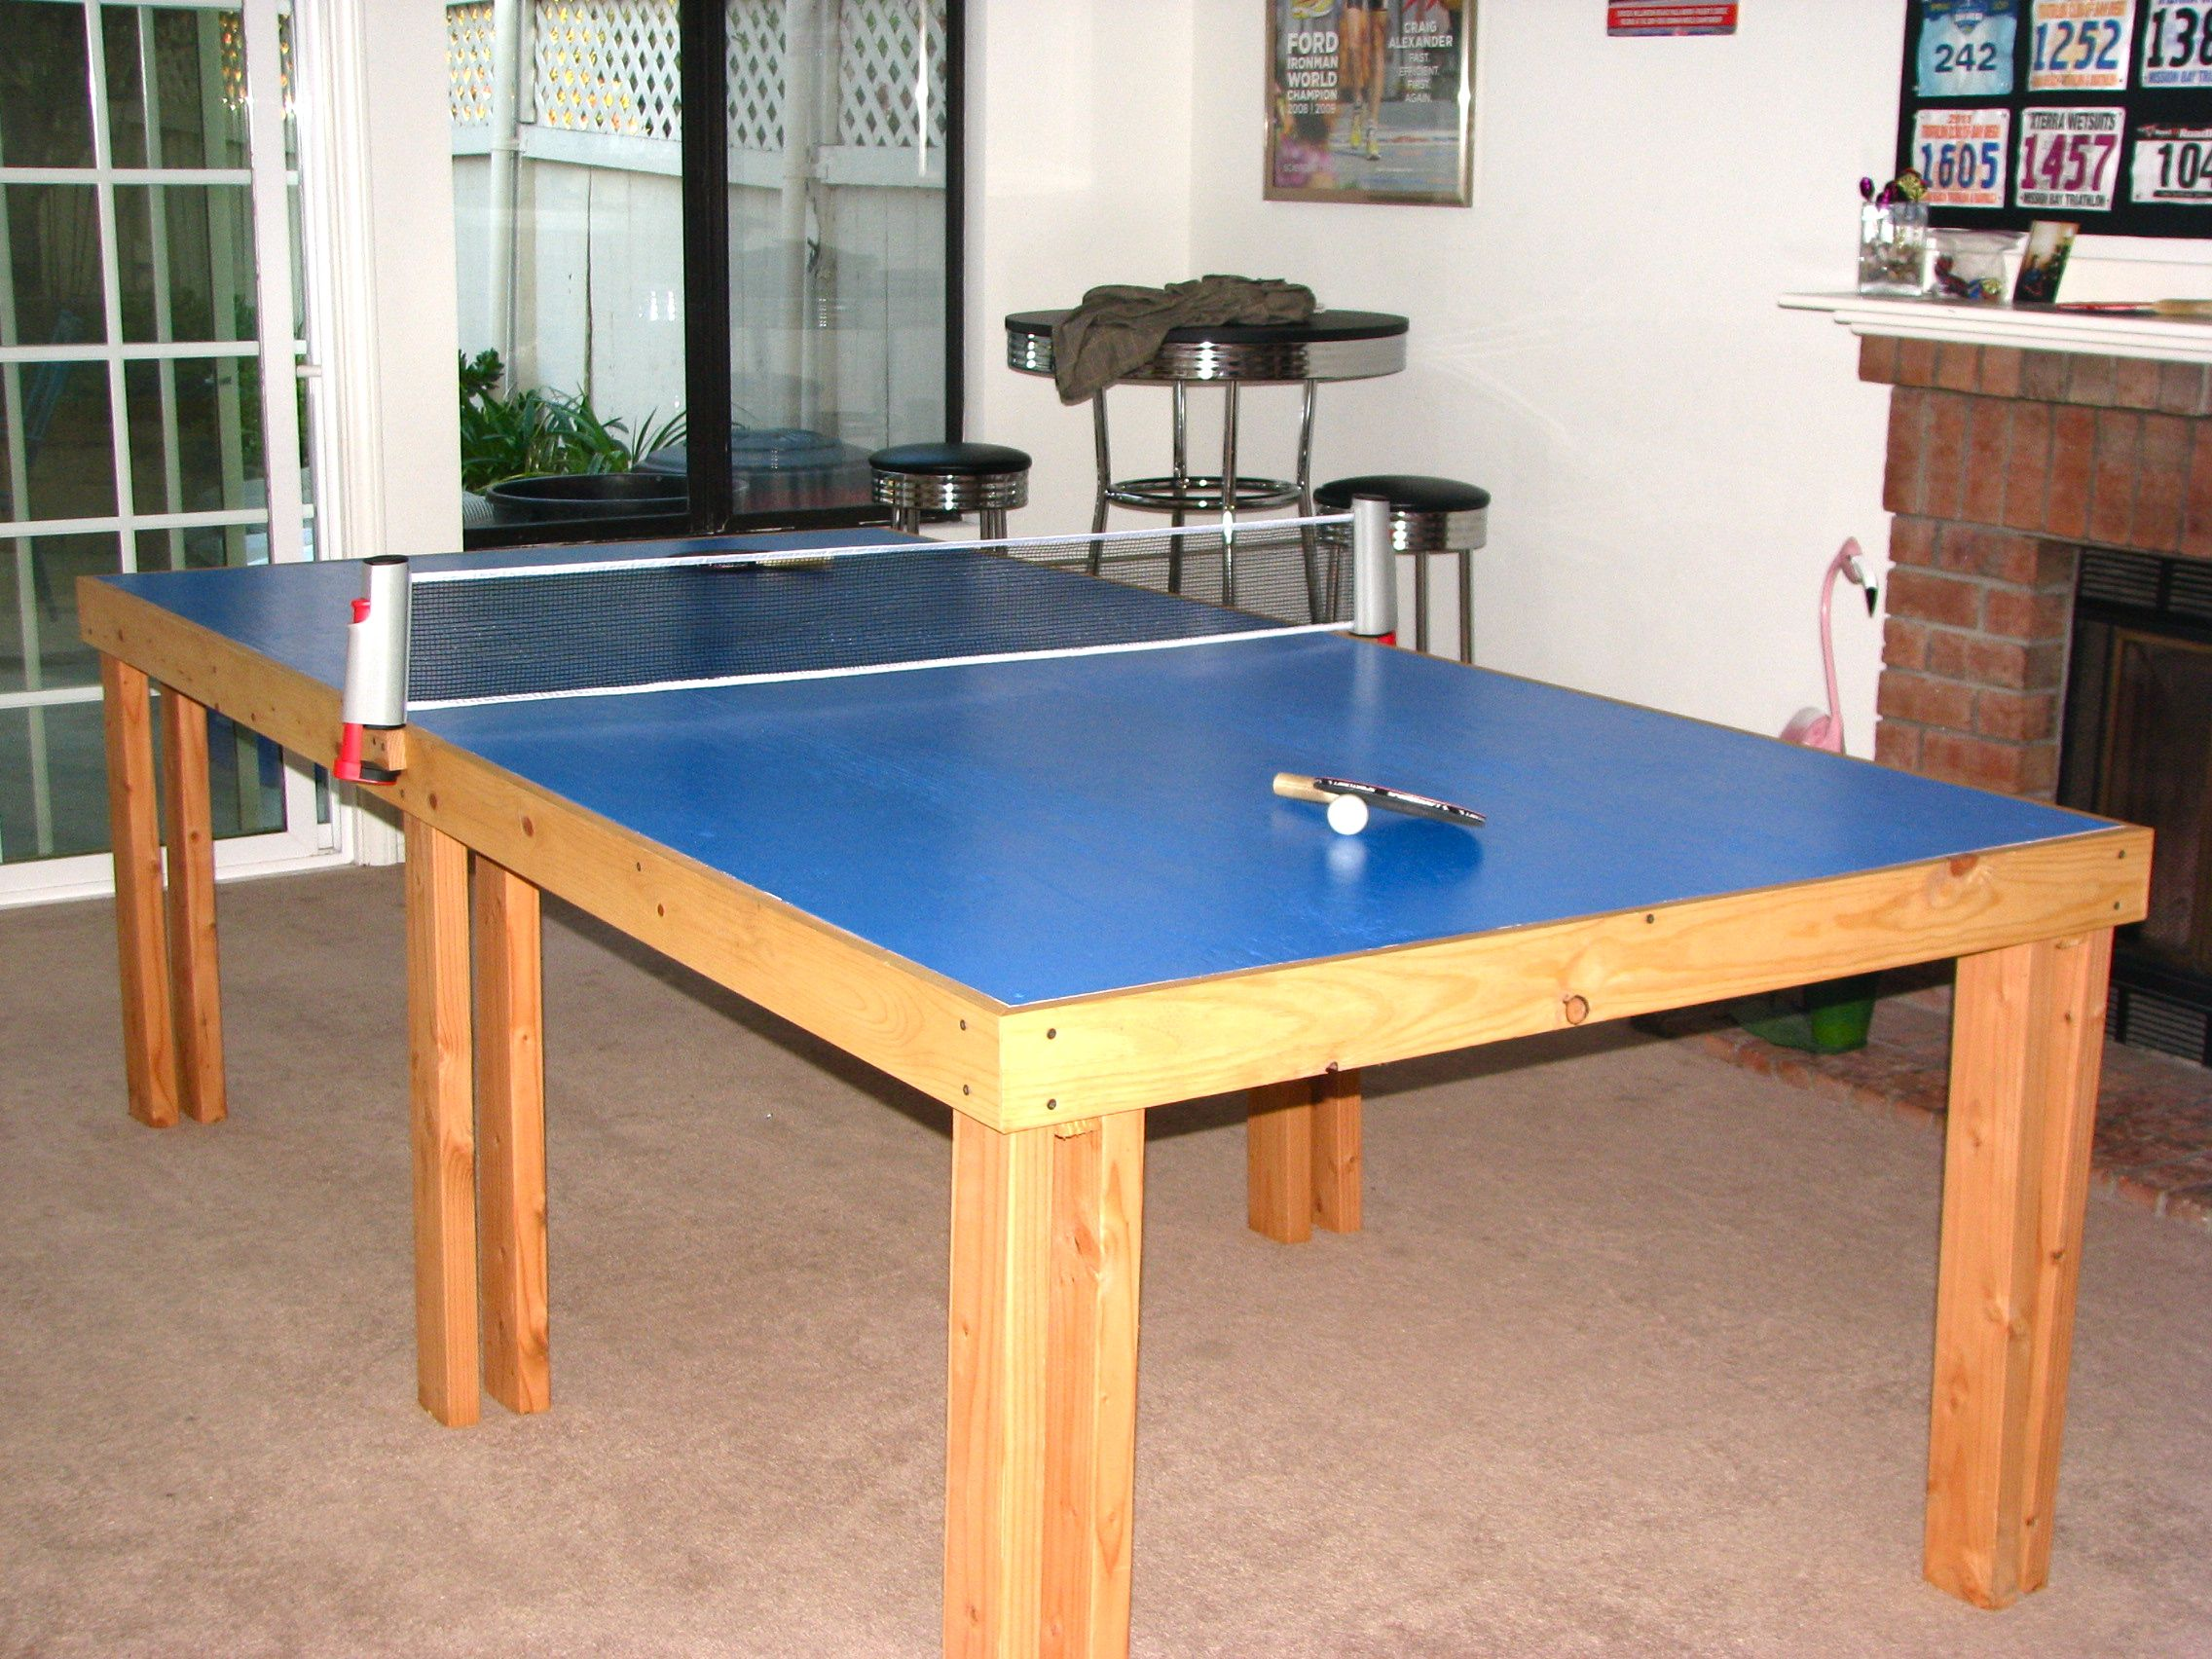 Our Homemade Ping Pong Table. Spent Less Than 120 For All The Supplies And